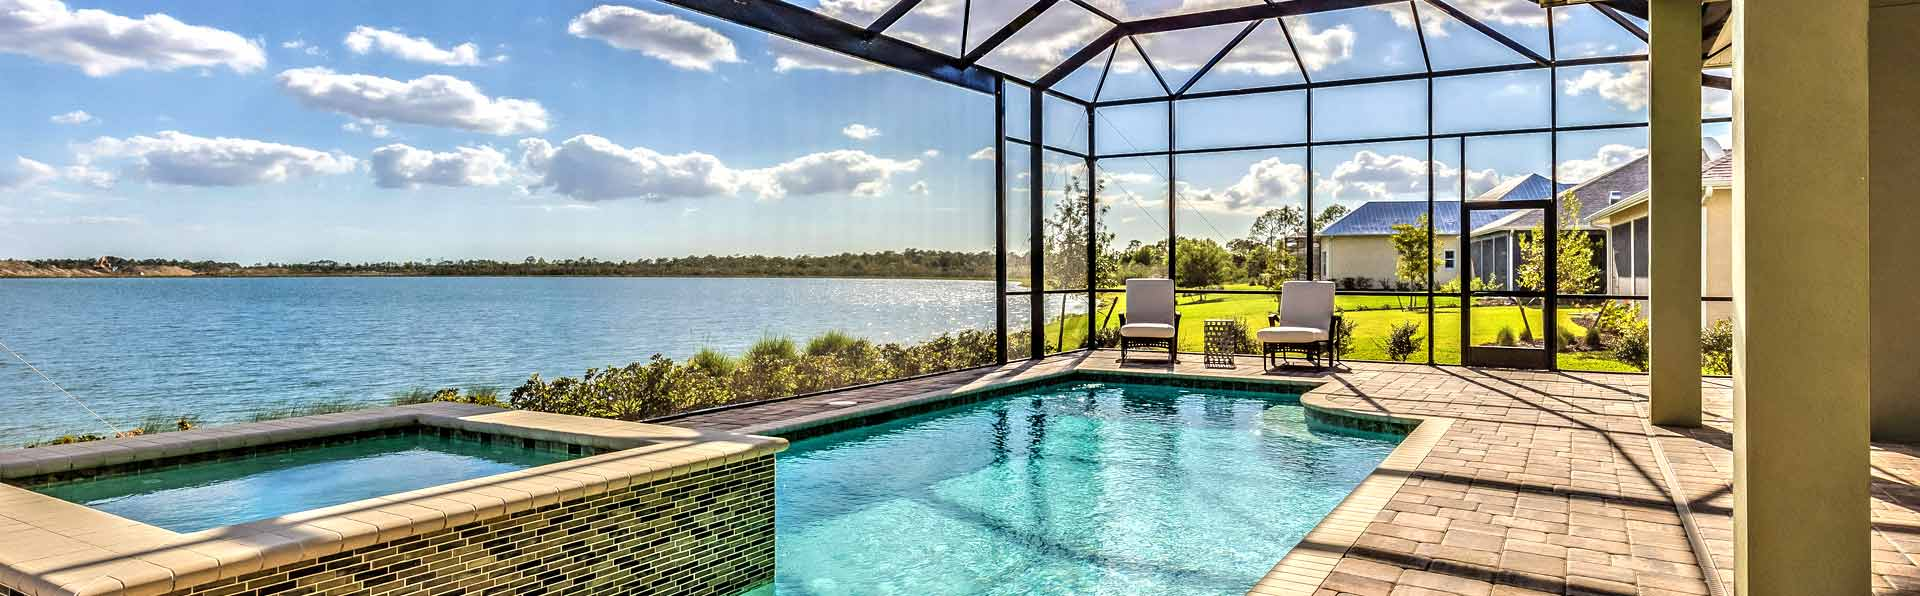 Screened-In Pool overlooking a lake